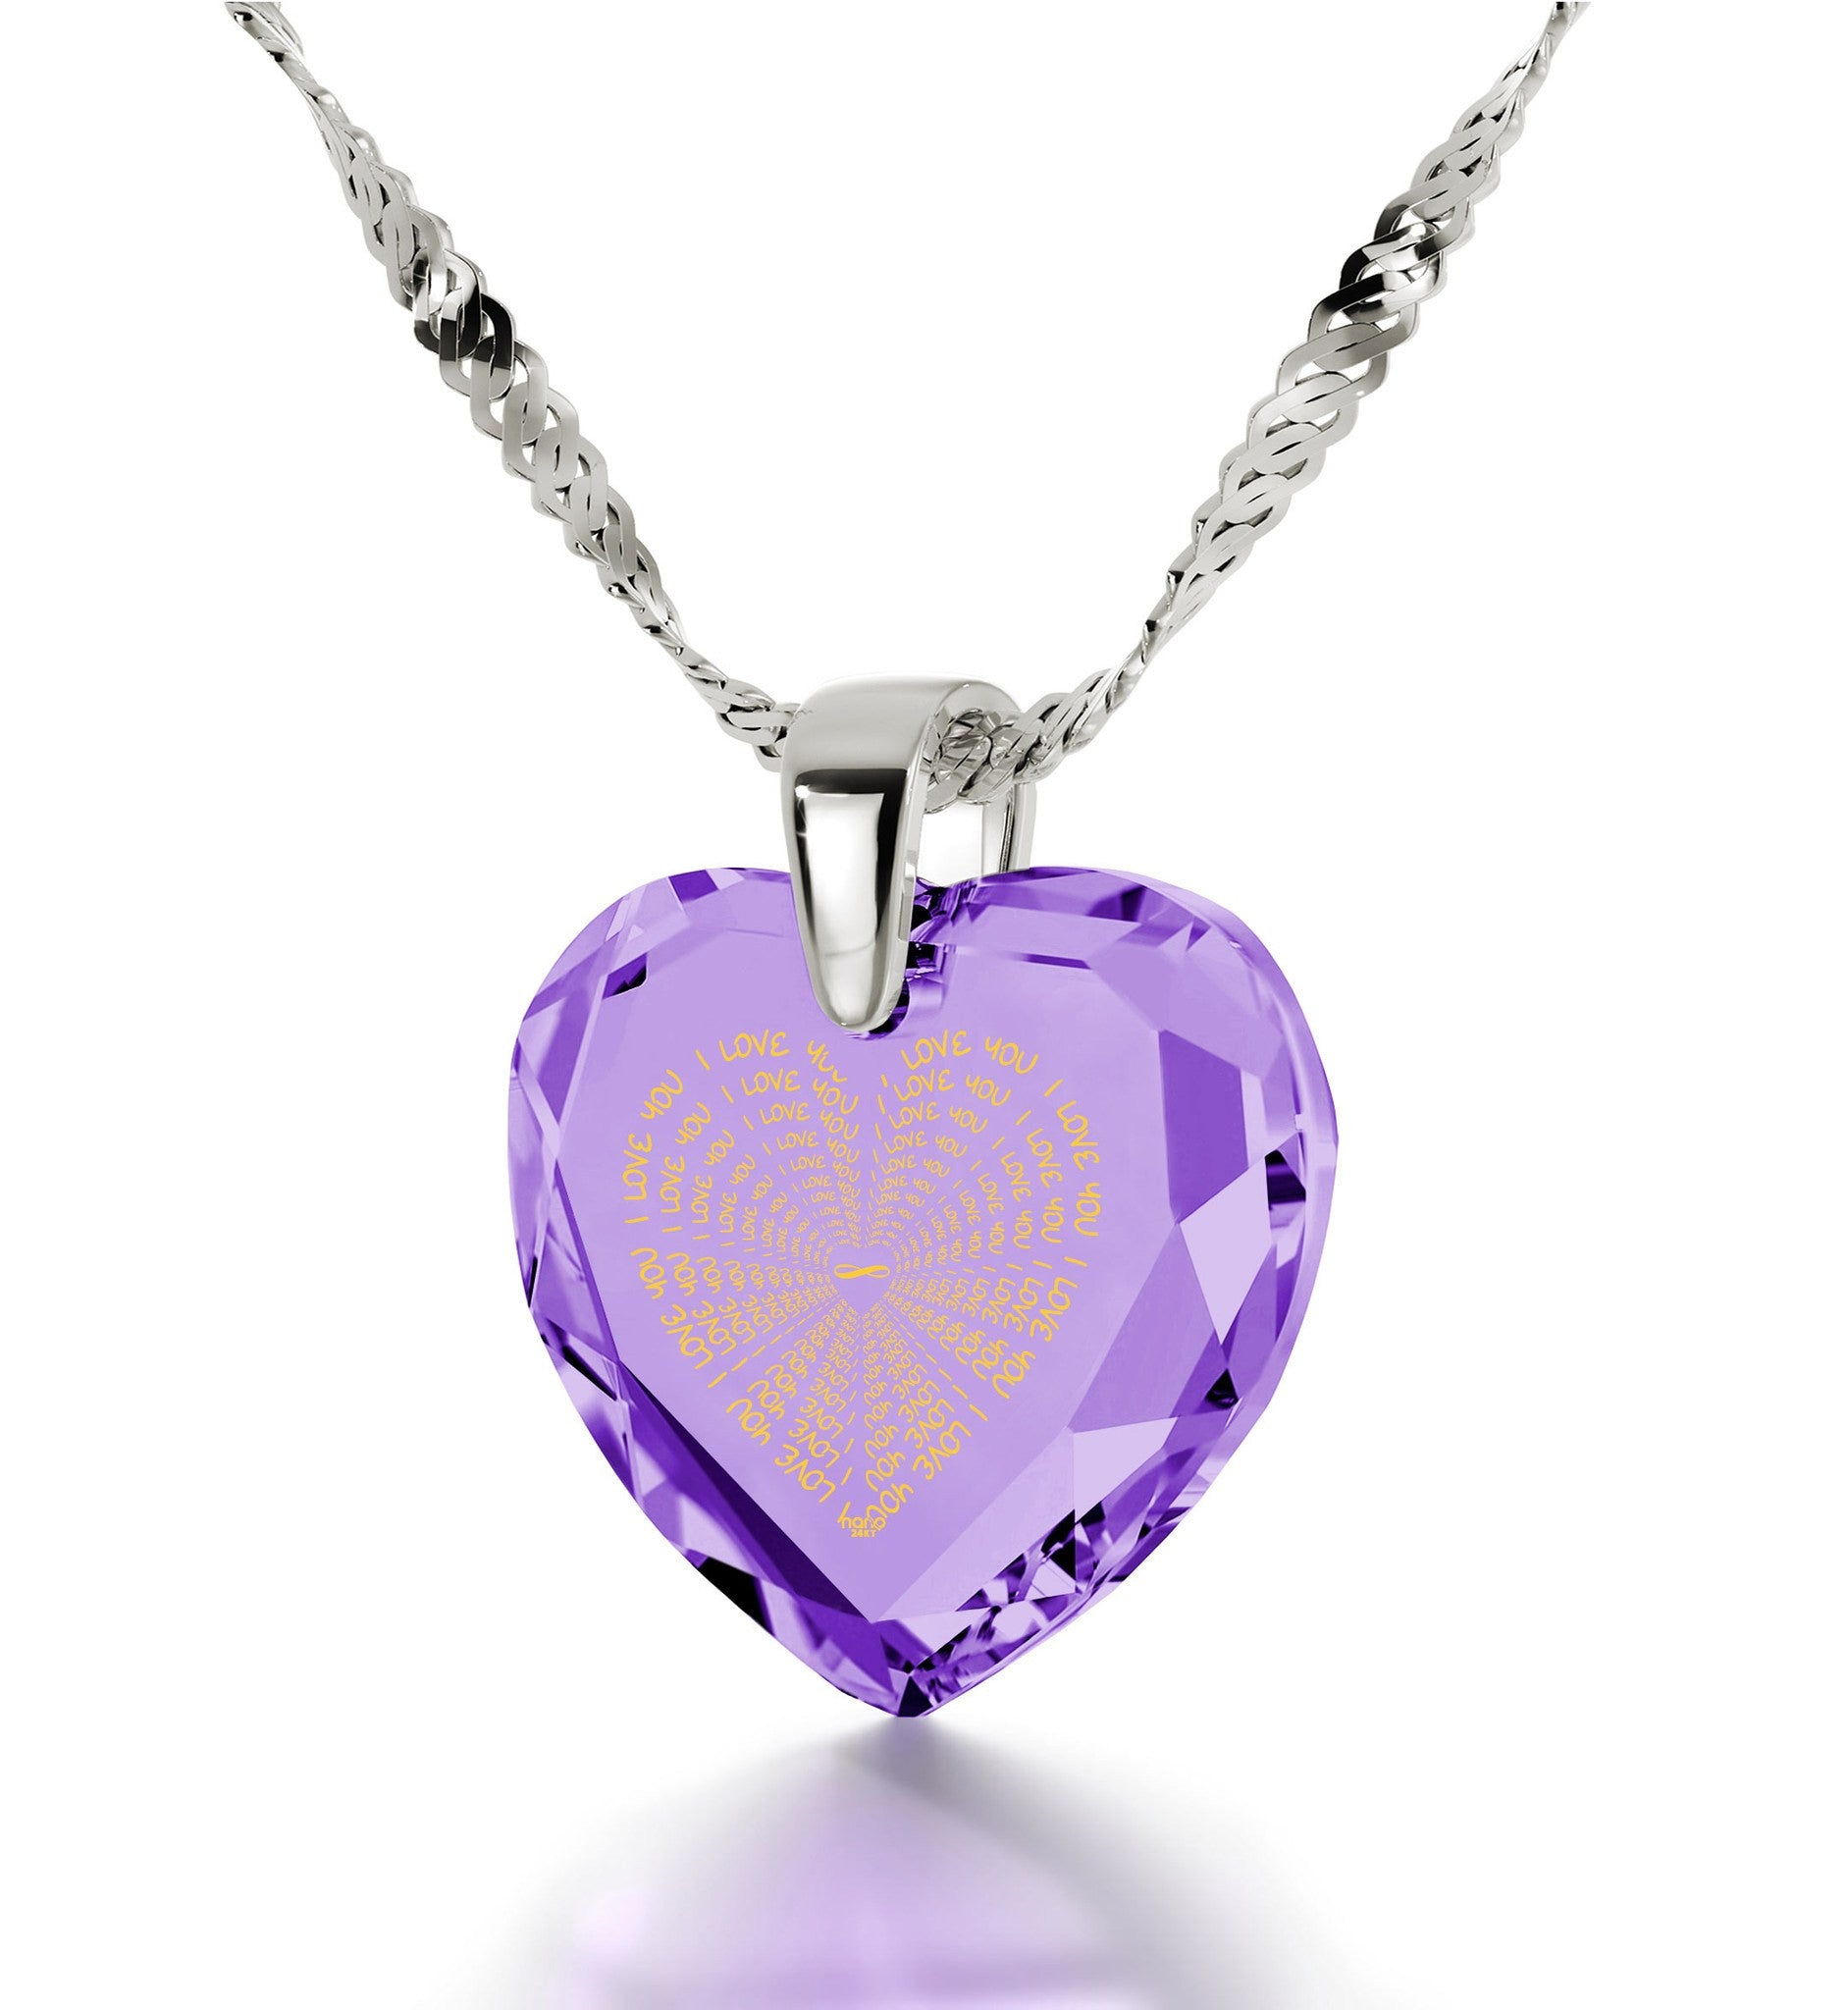 The Love Necklace, Purple CZ Jewelry, Romantic Gift For Her, Engraved In 24k Pure Gold, by Nano Jewelry